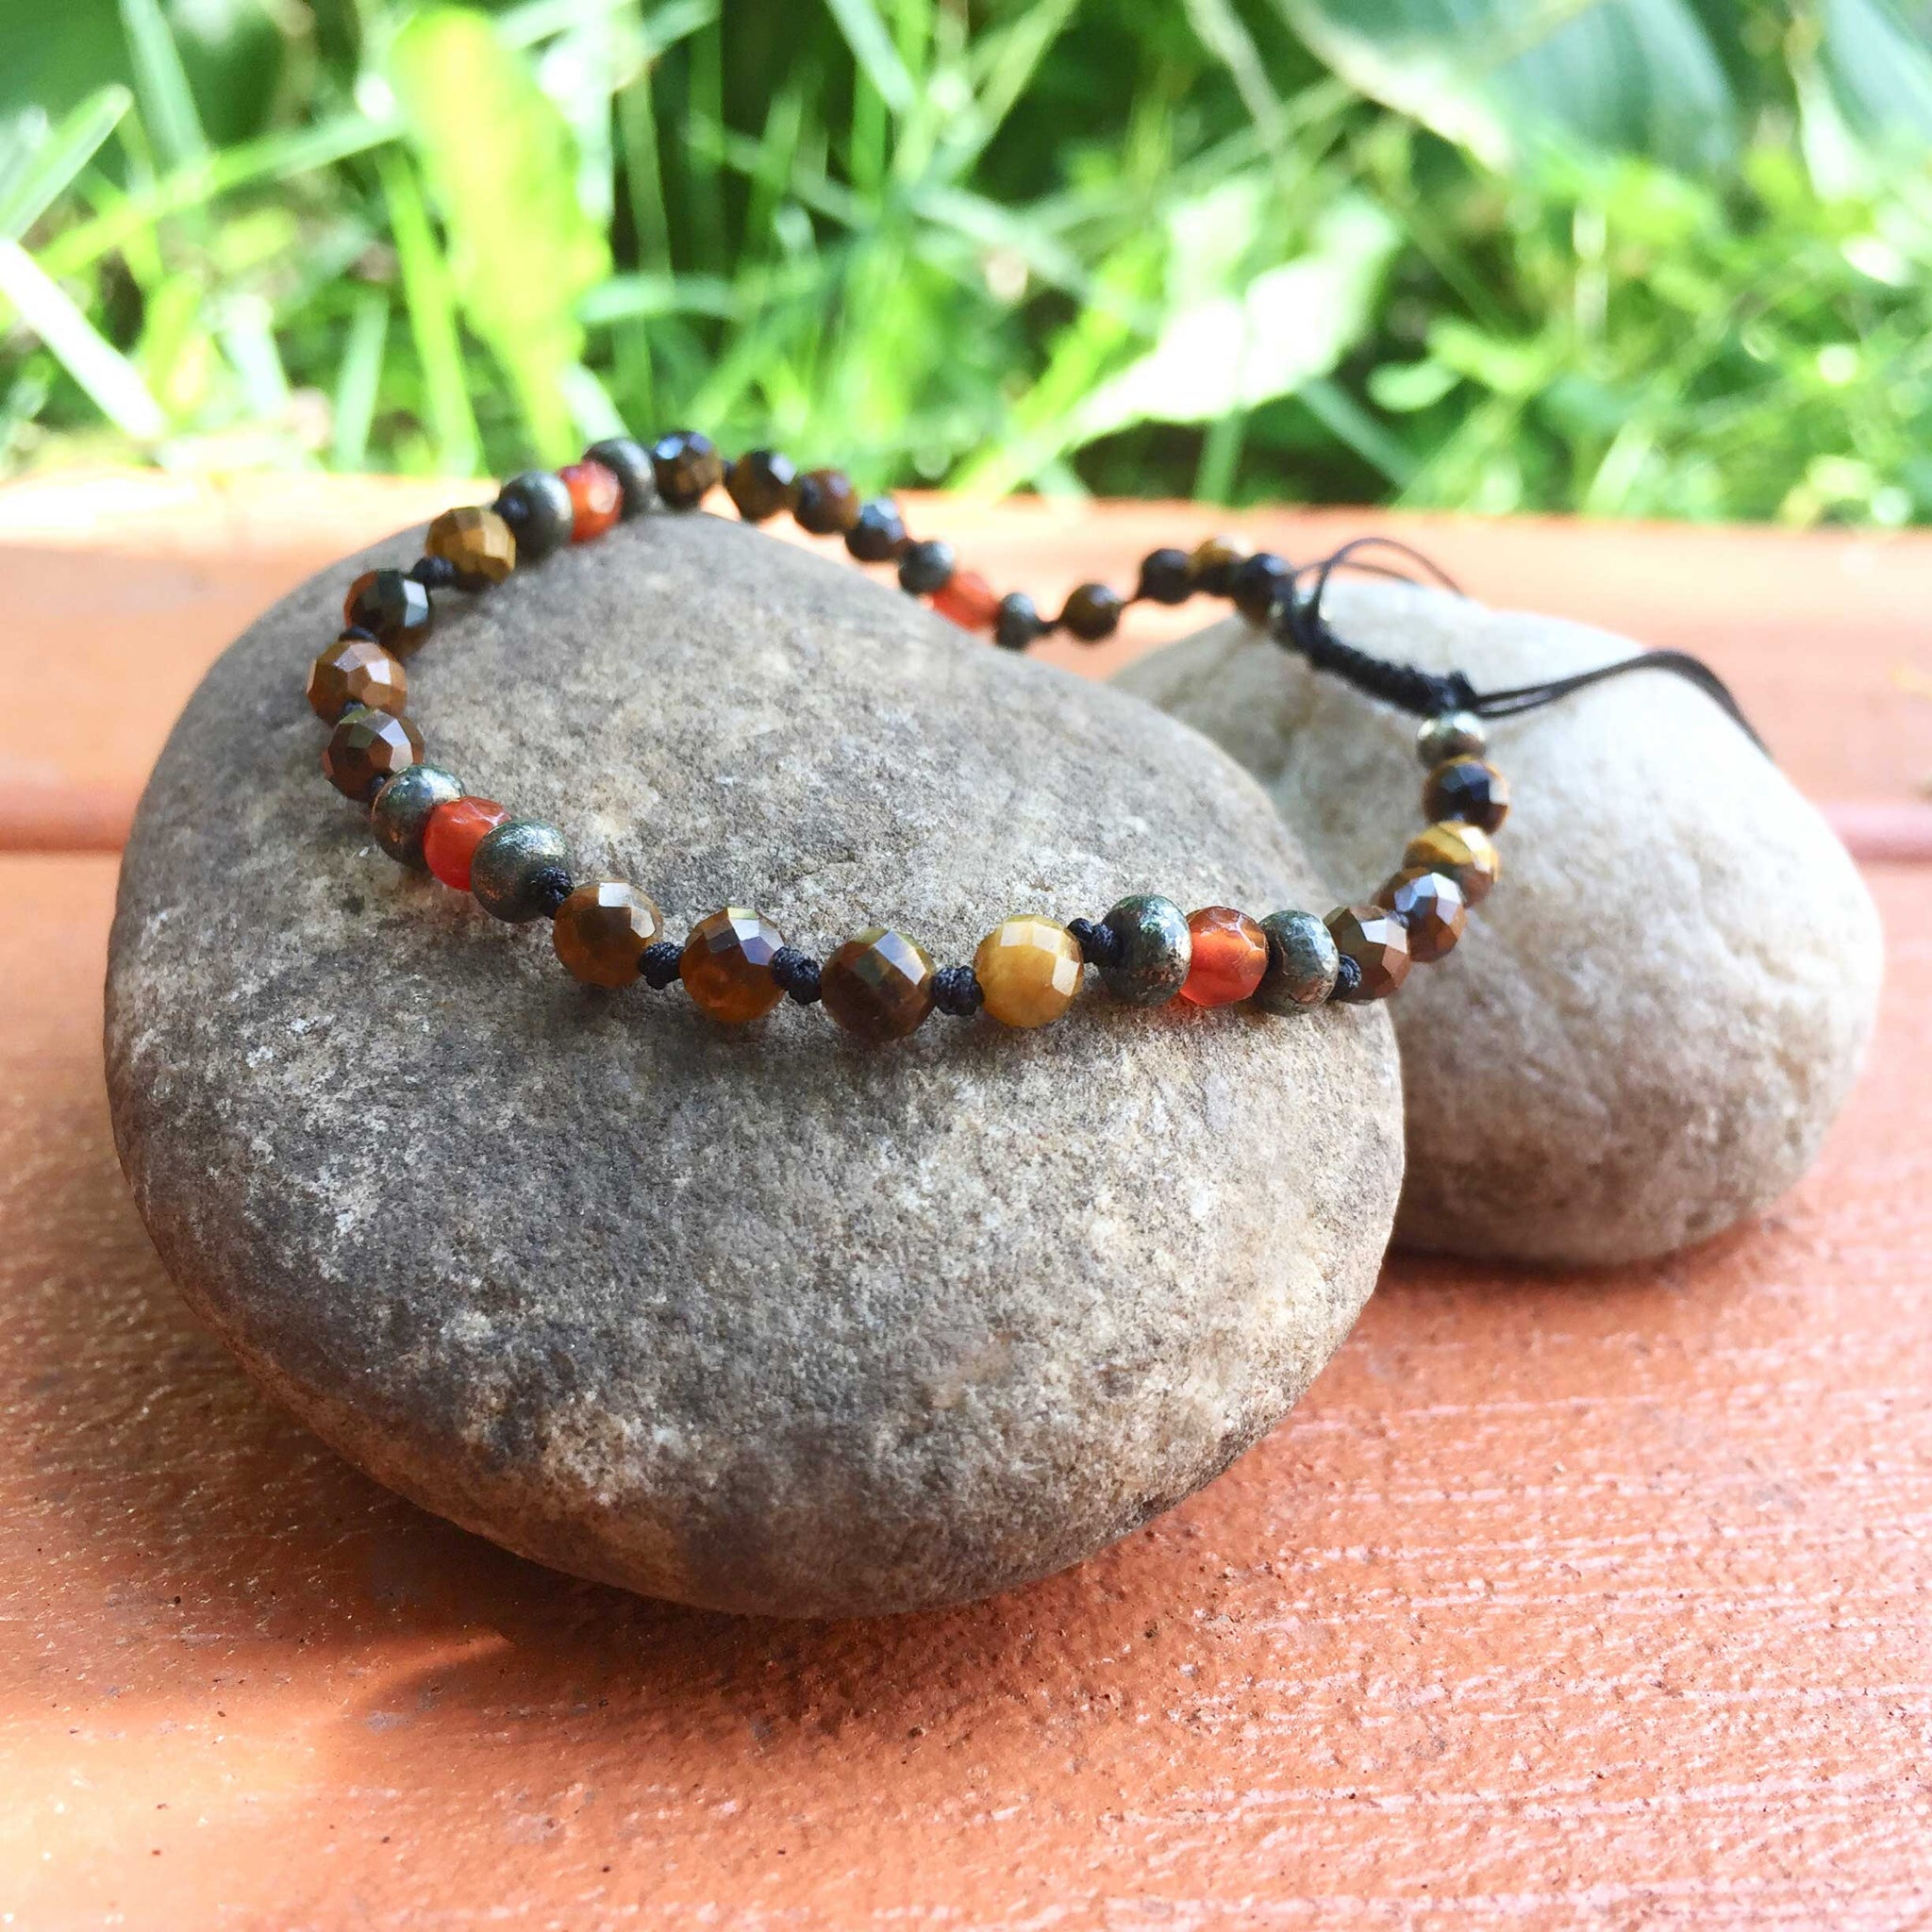 3) Tiger's Eye with Pyrtie and Carnelian